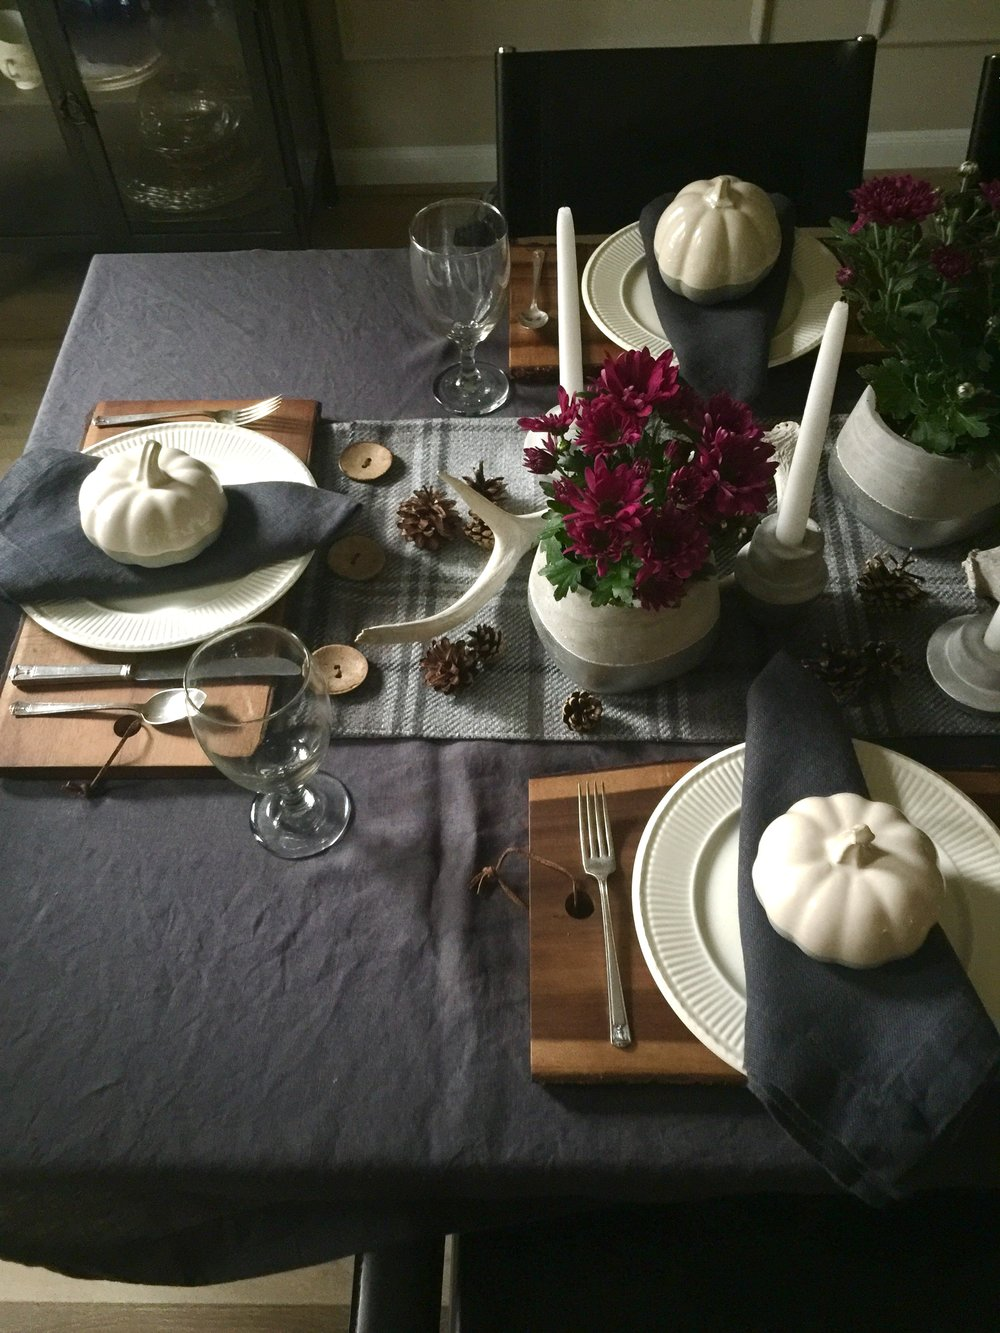 Dining room tabletop centerpiece for Thanksgiving #cuttingboard #creamware #pumpkins #magenta #centerpiece #tablesetting #diningroom